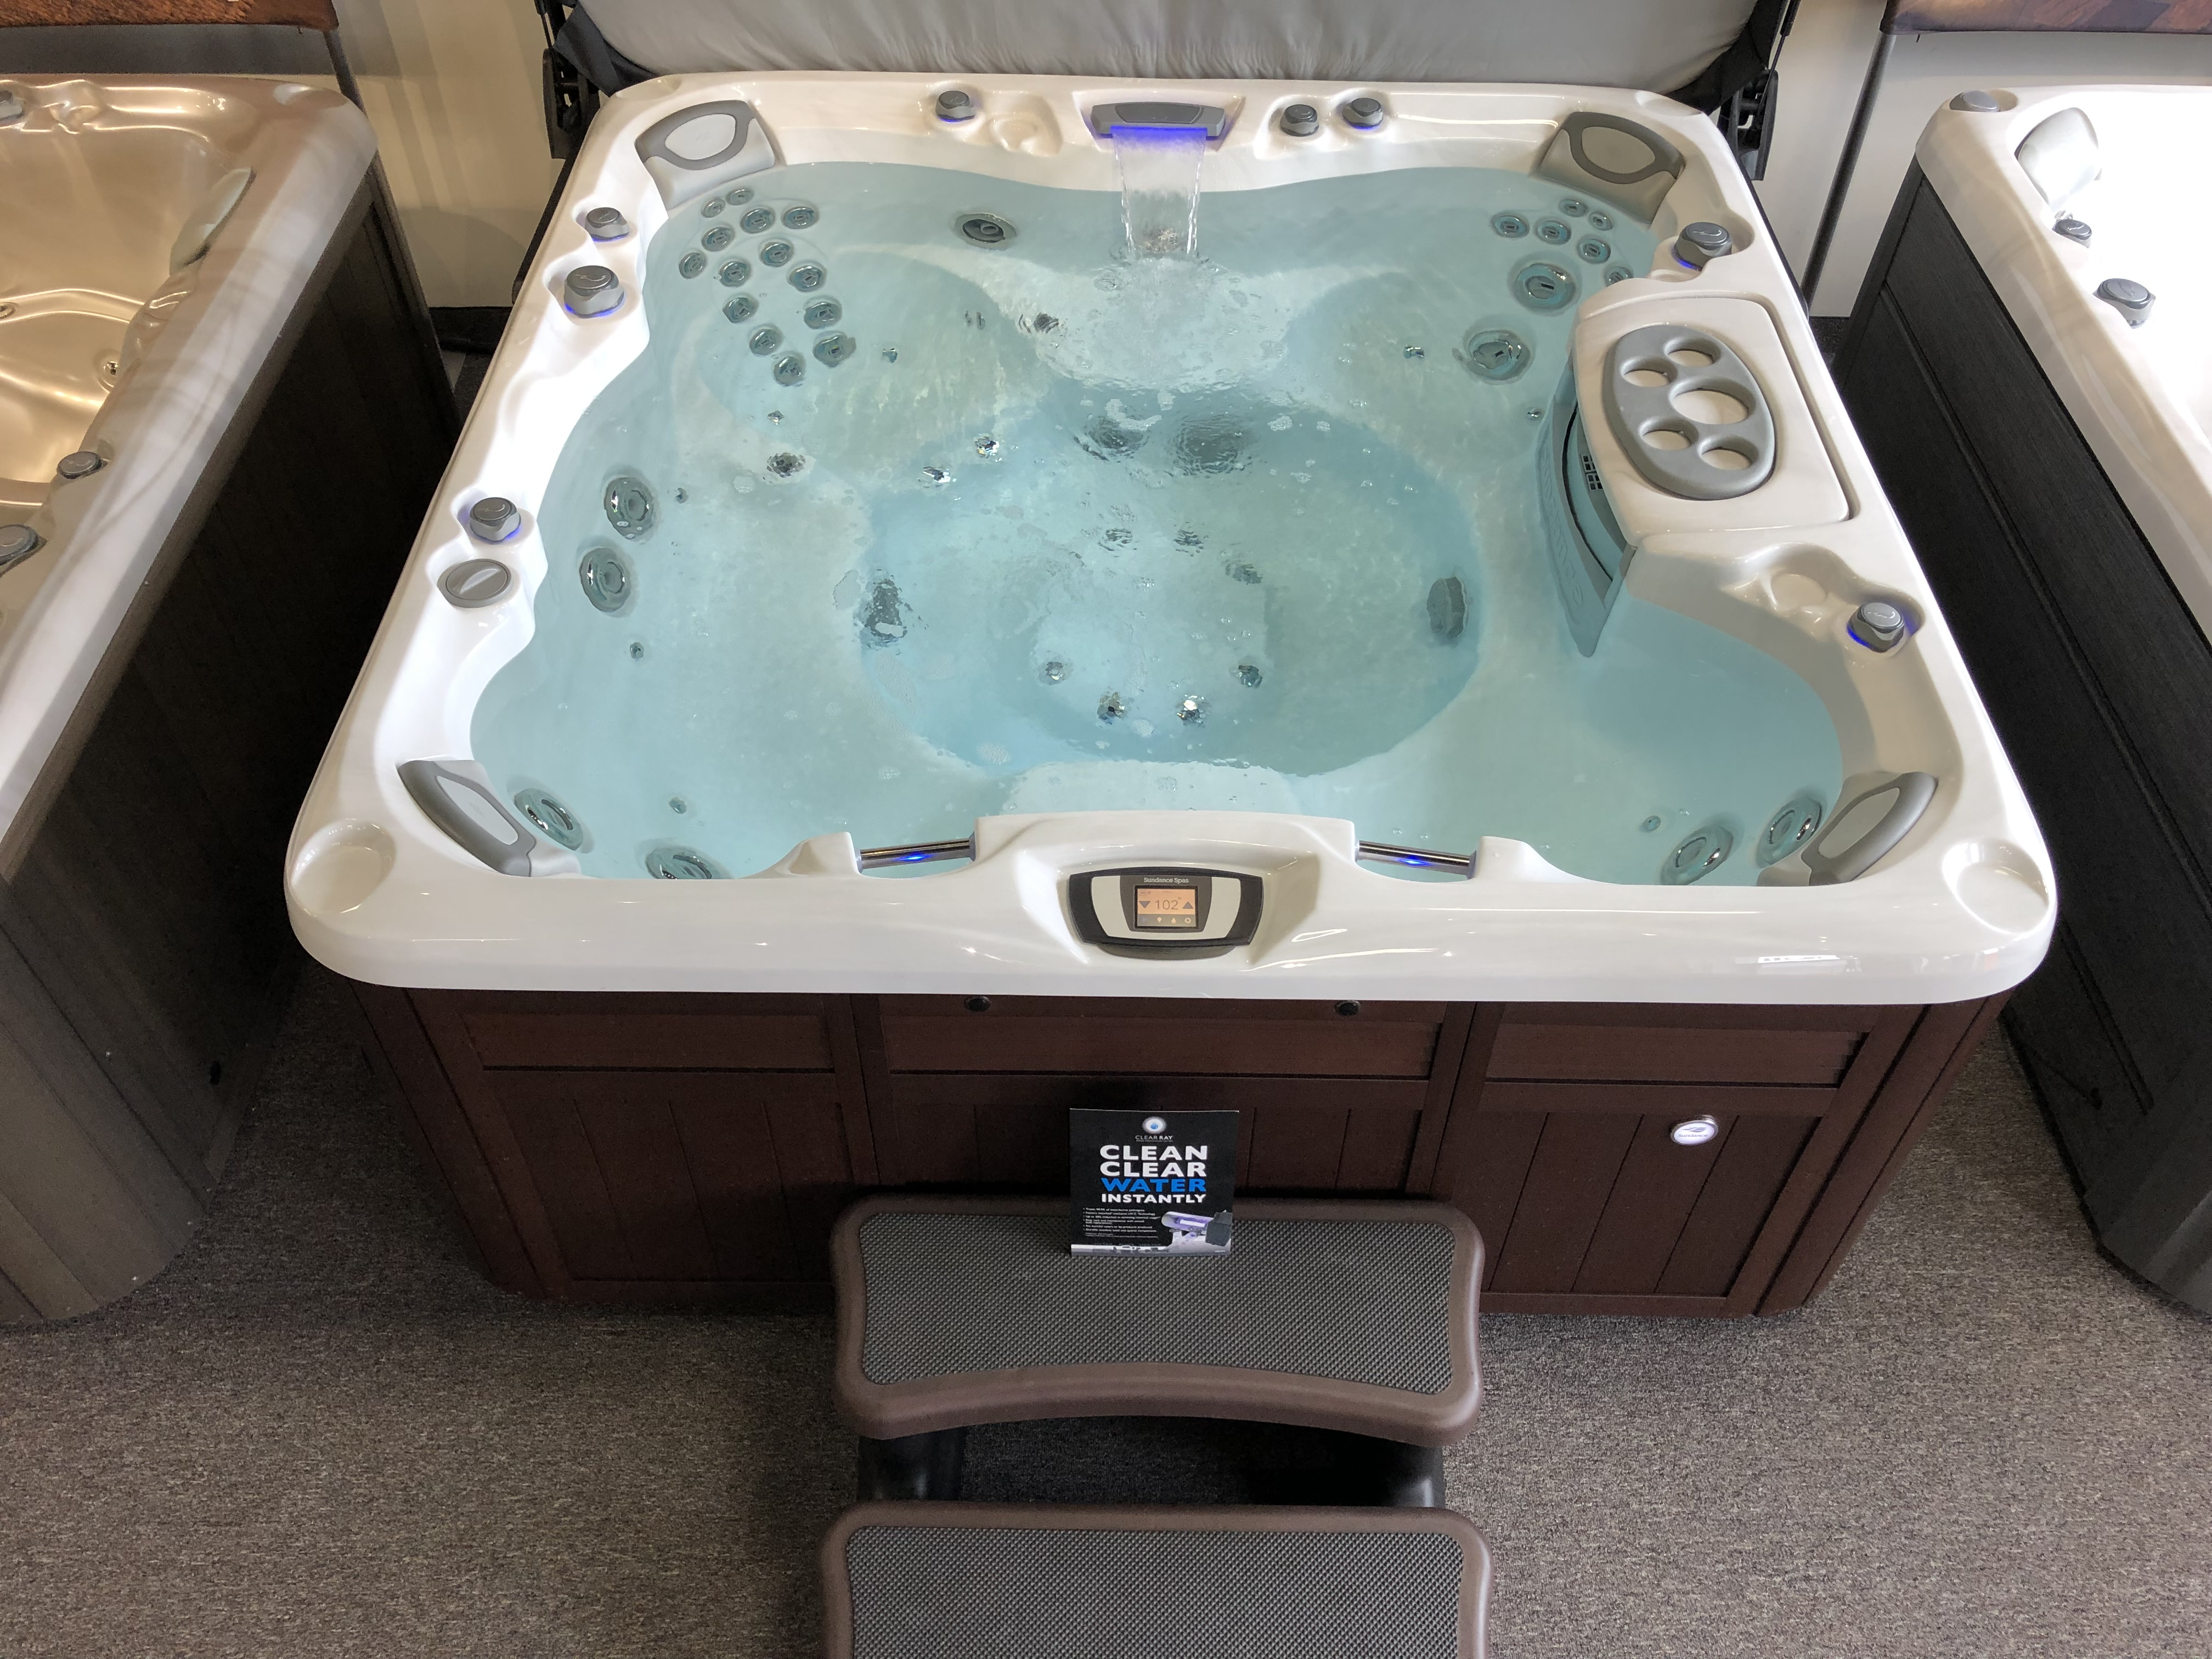 Sundance Spas 880 Series Optima 7 person hot tub hot tubs near me store Vaughan Ontario